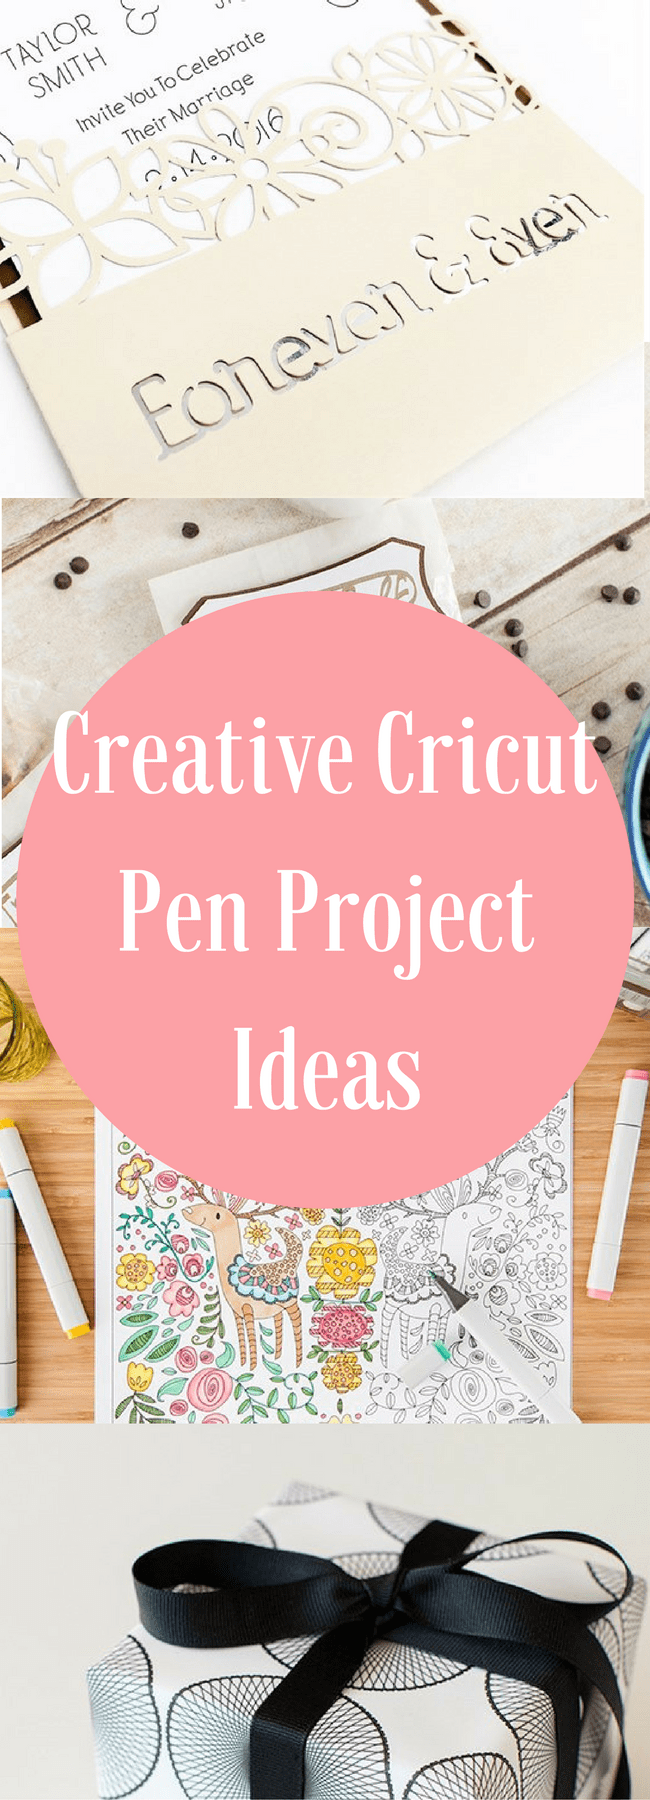 How To Write With Cricut Explore Air 1000 Images About Circuit Projects On Pinterest Pen Diy Ideas